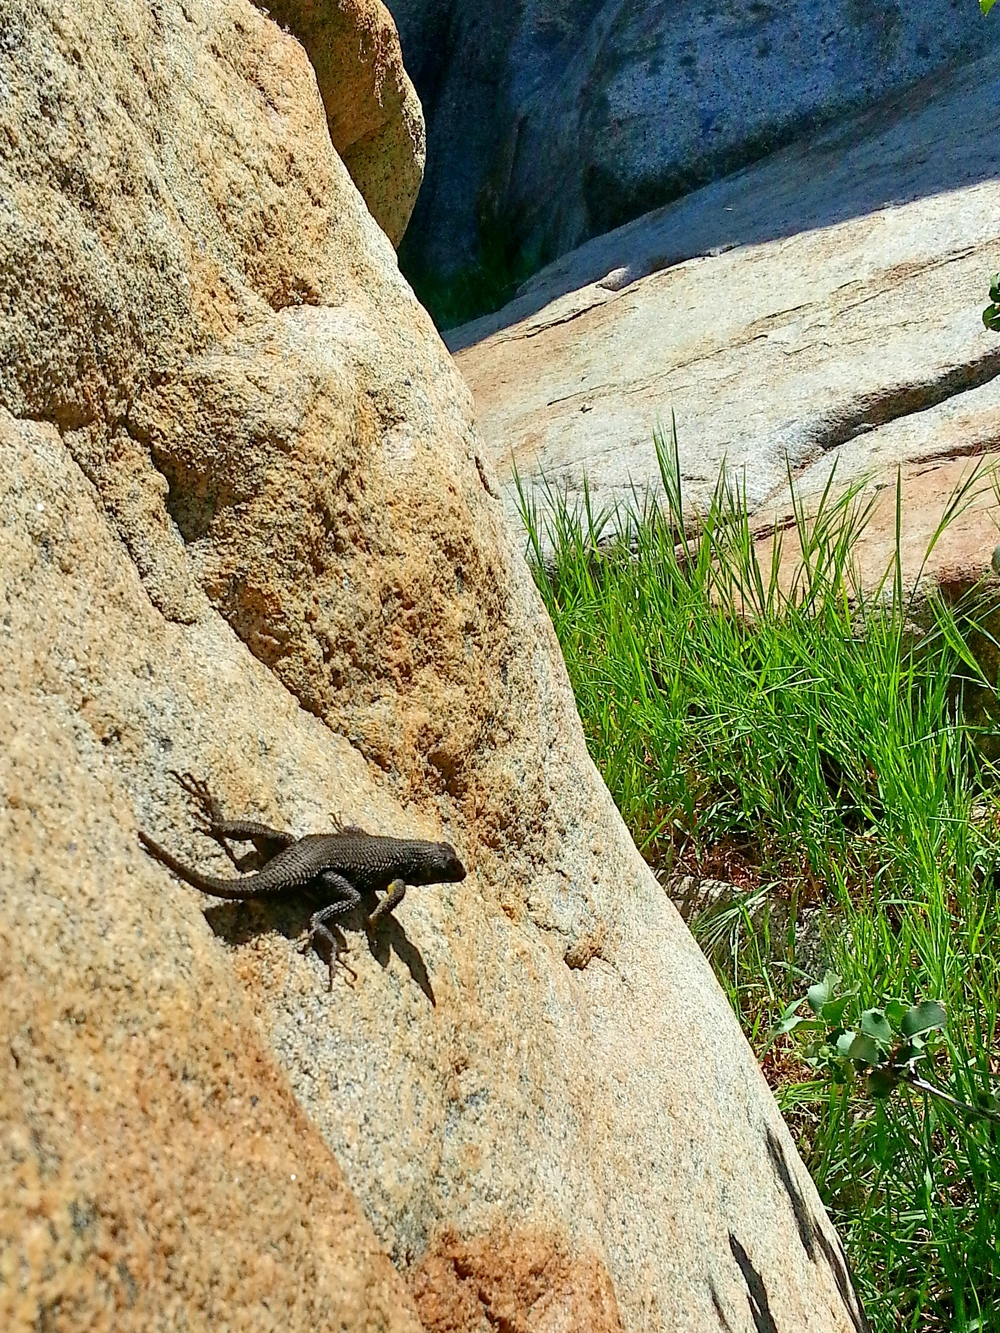 Not much wildlife except some hawks and lots of these lizards